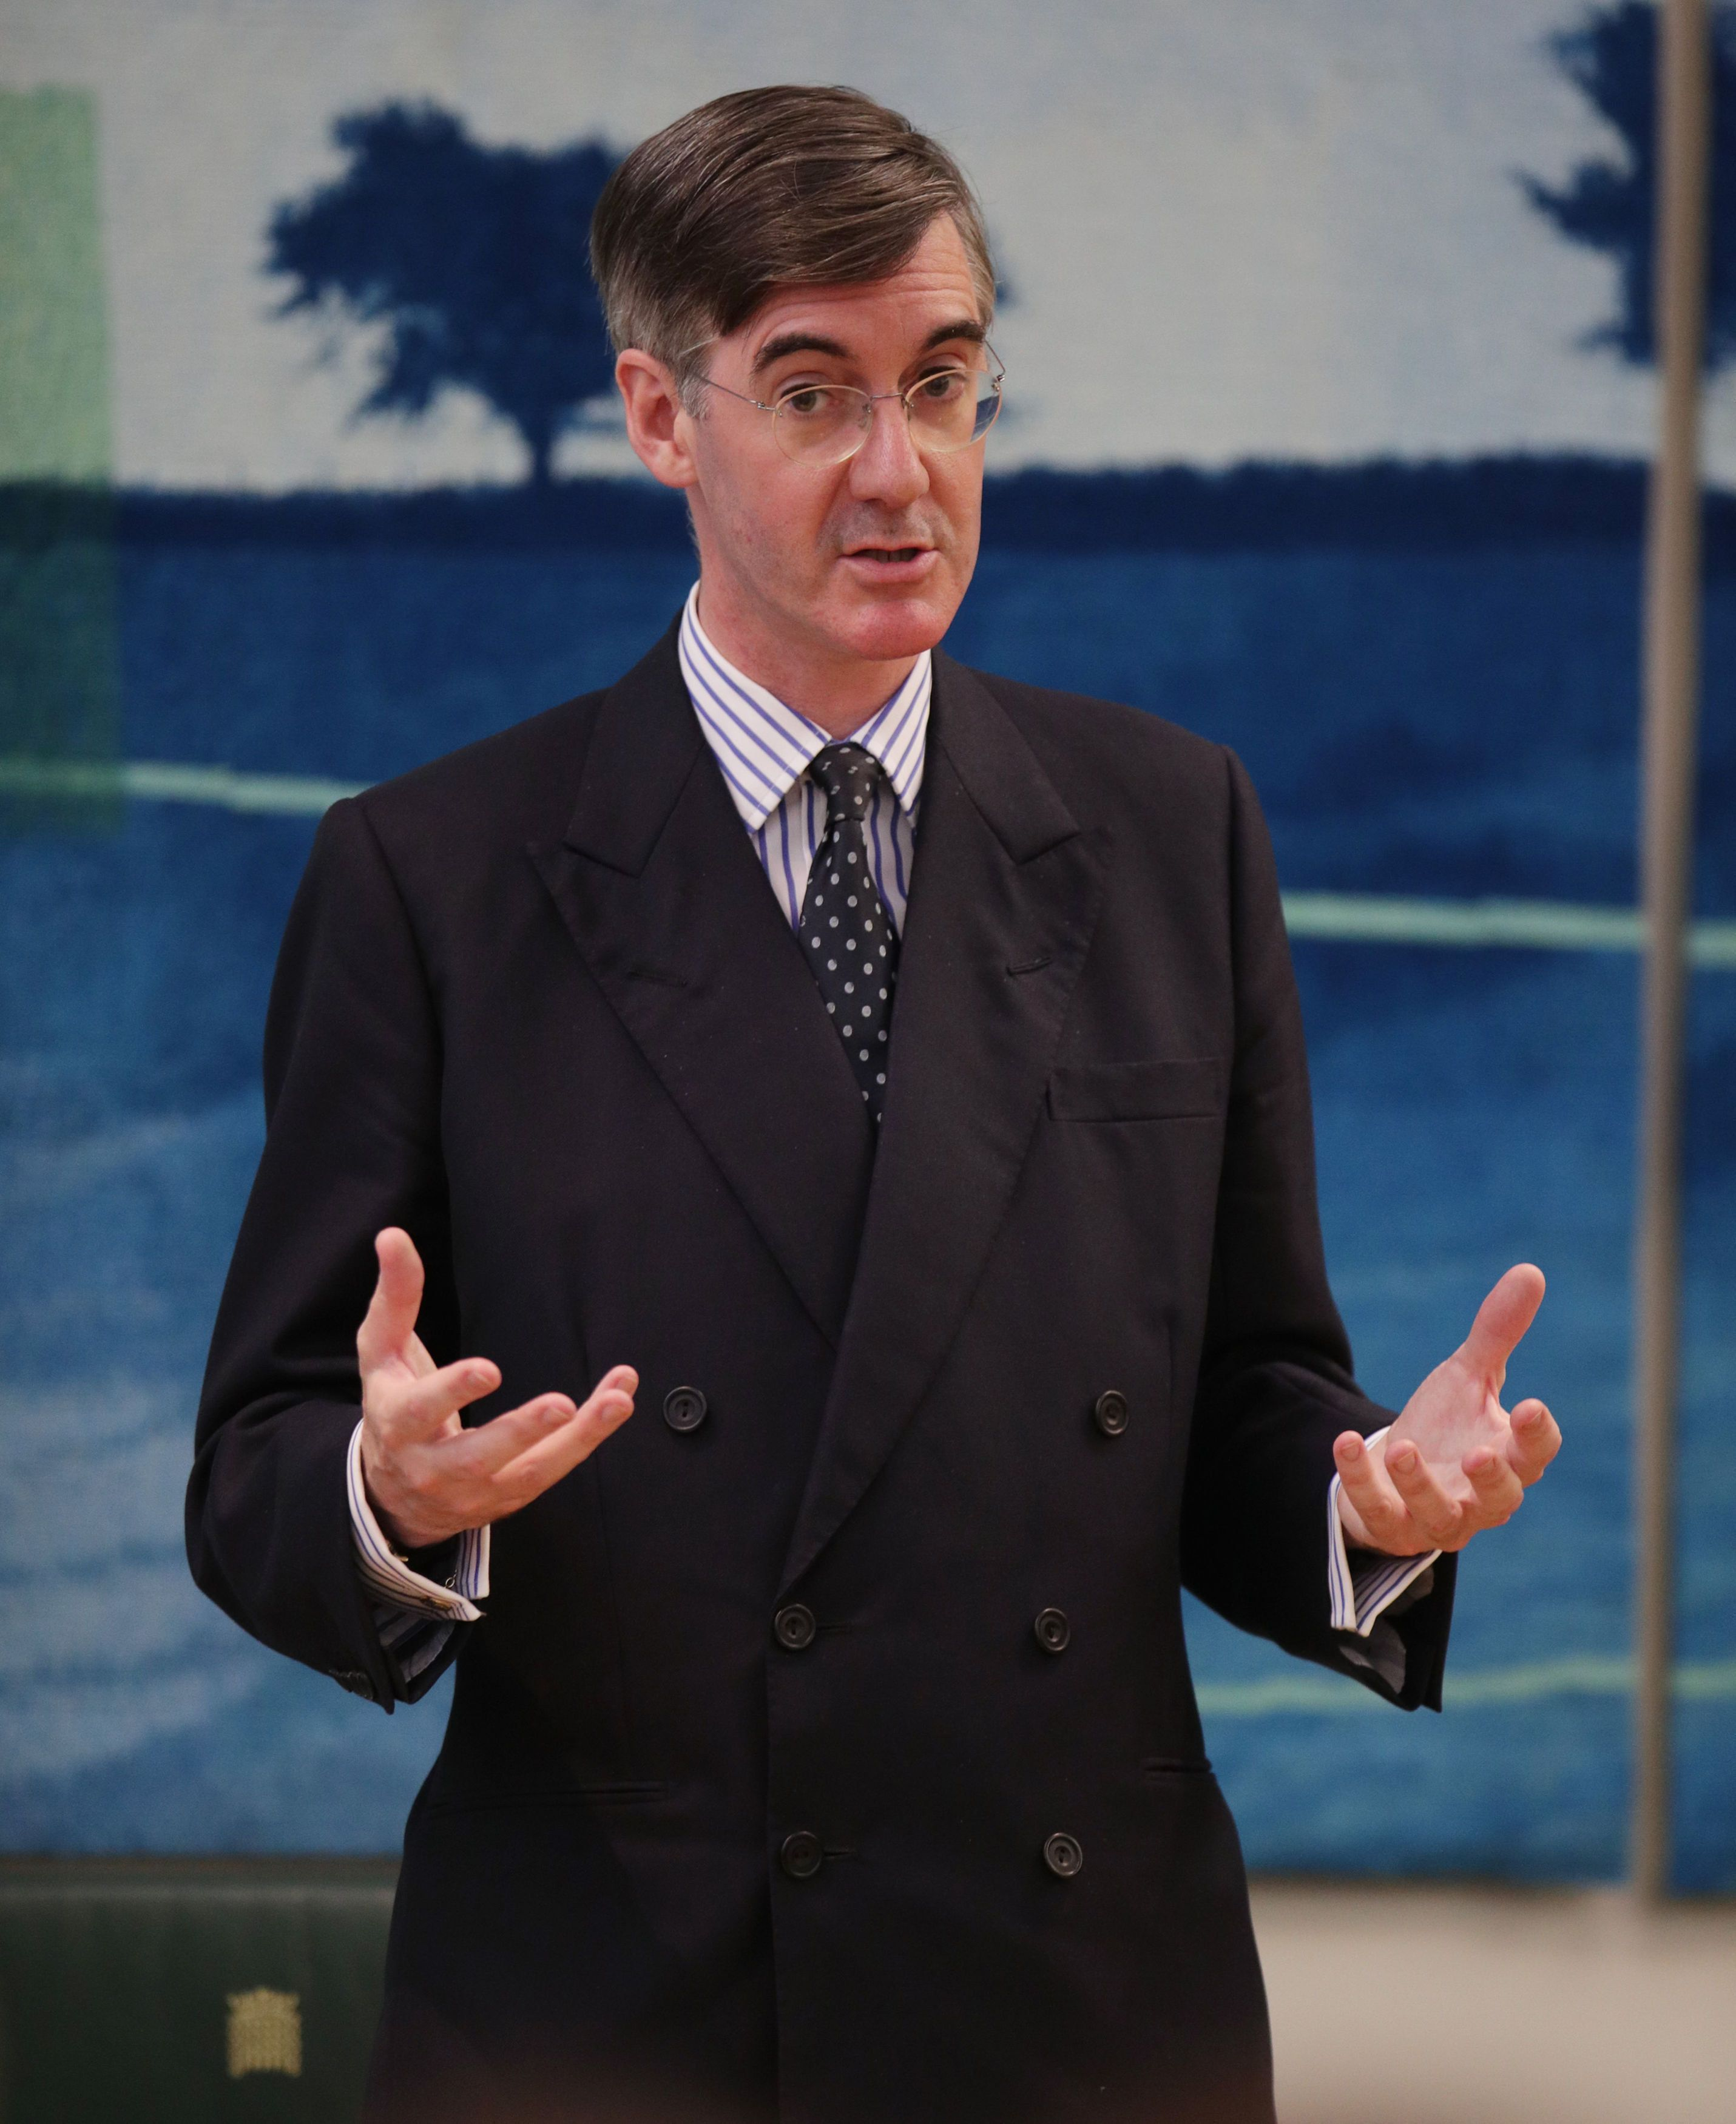 Jacob Rees Mogg says May can't avoid more spending on the